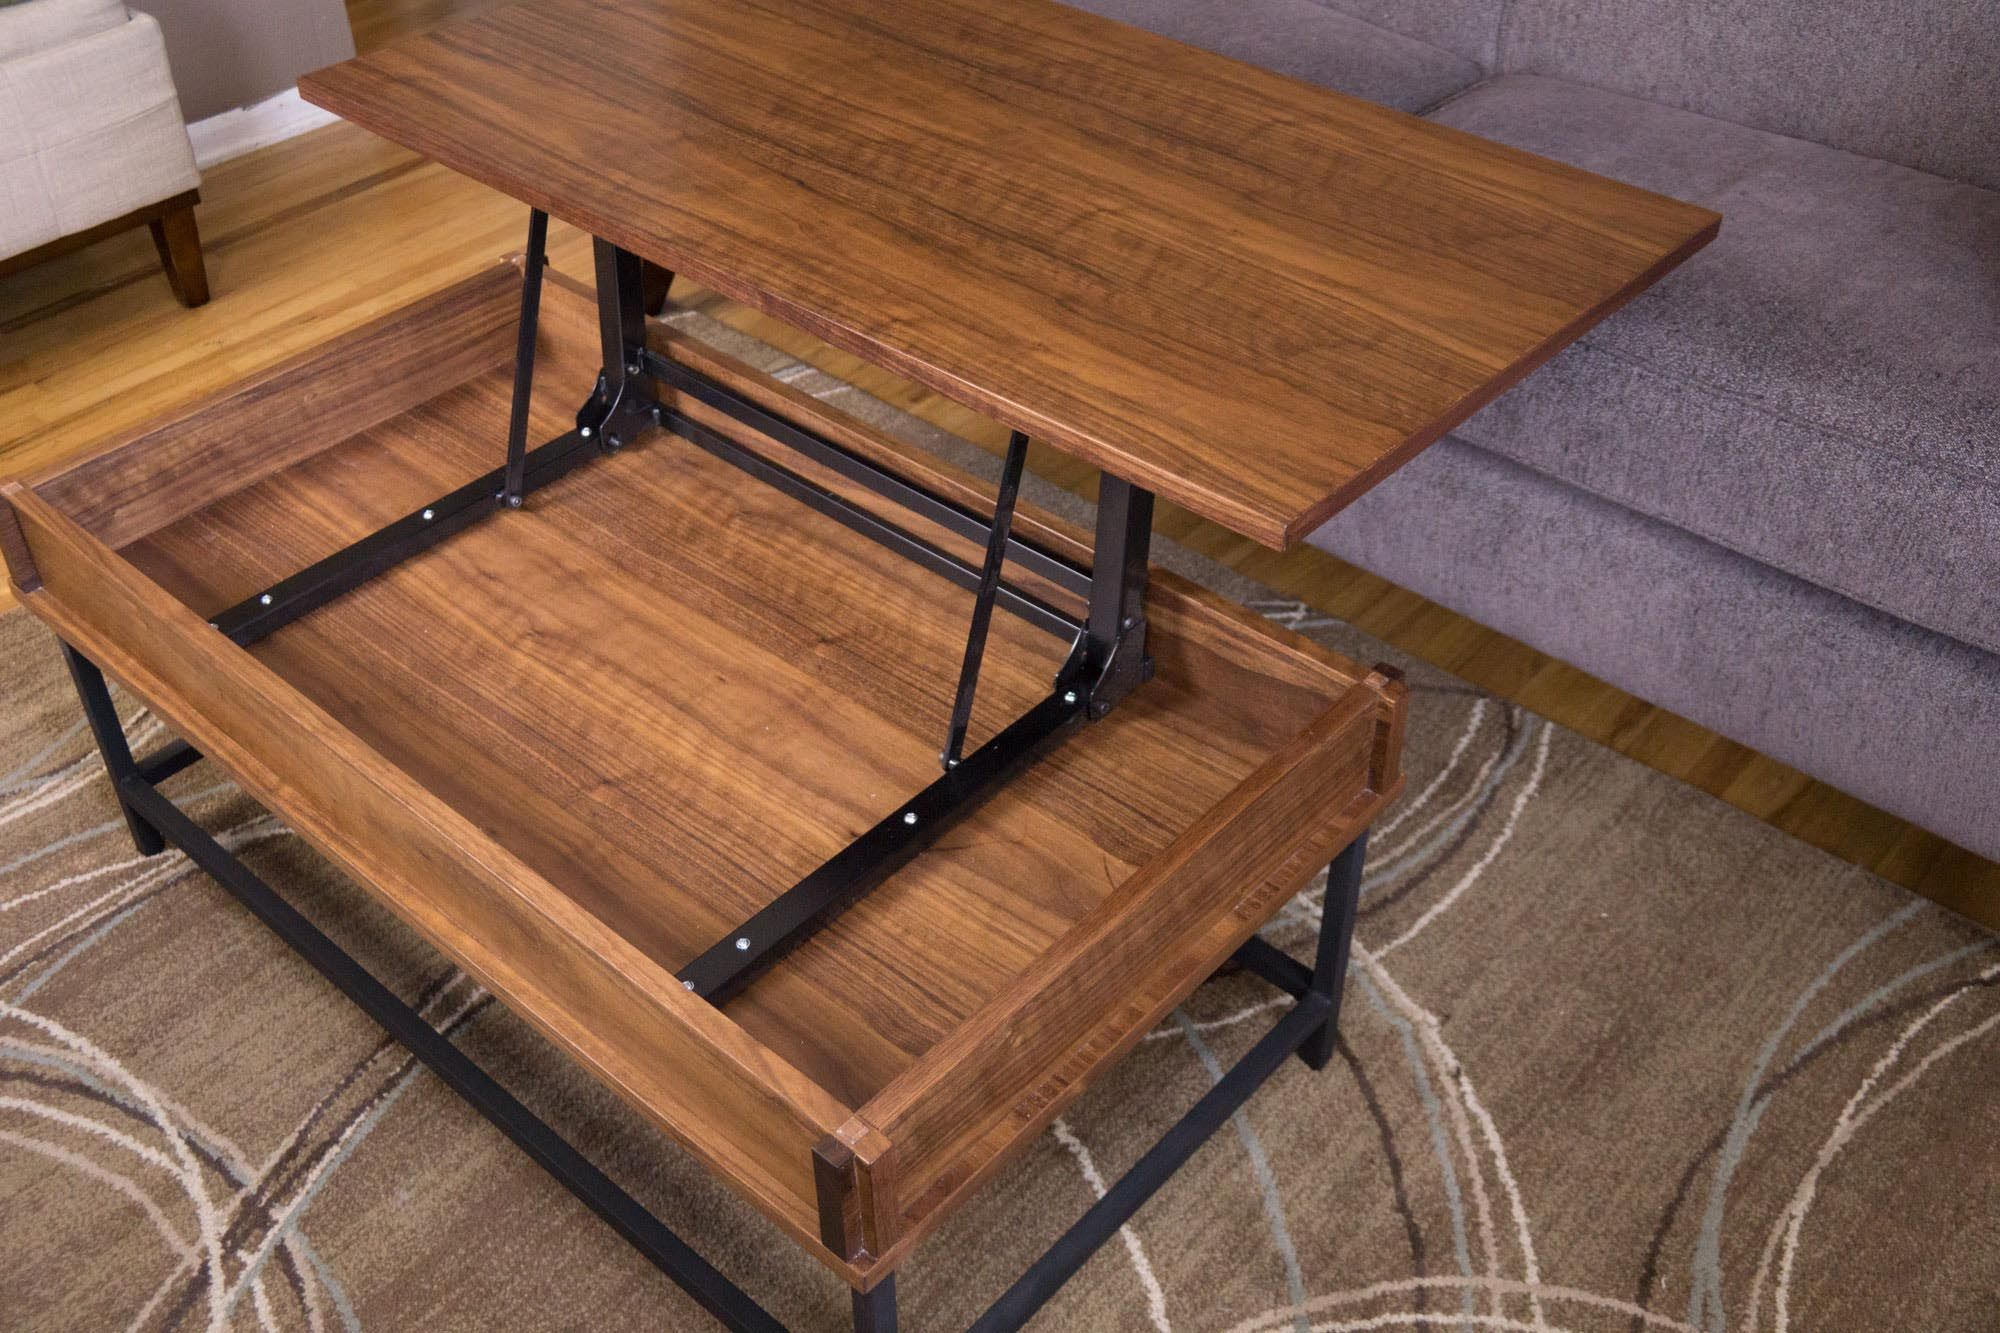 Pop Up Coffee Table Plans Coffee Tables Diy Coffee Table Coffee Table Plans Coffee Table Desk